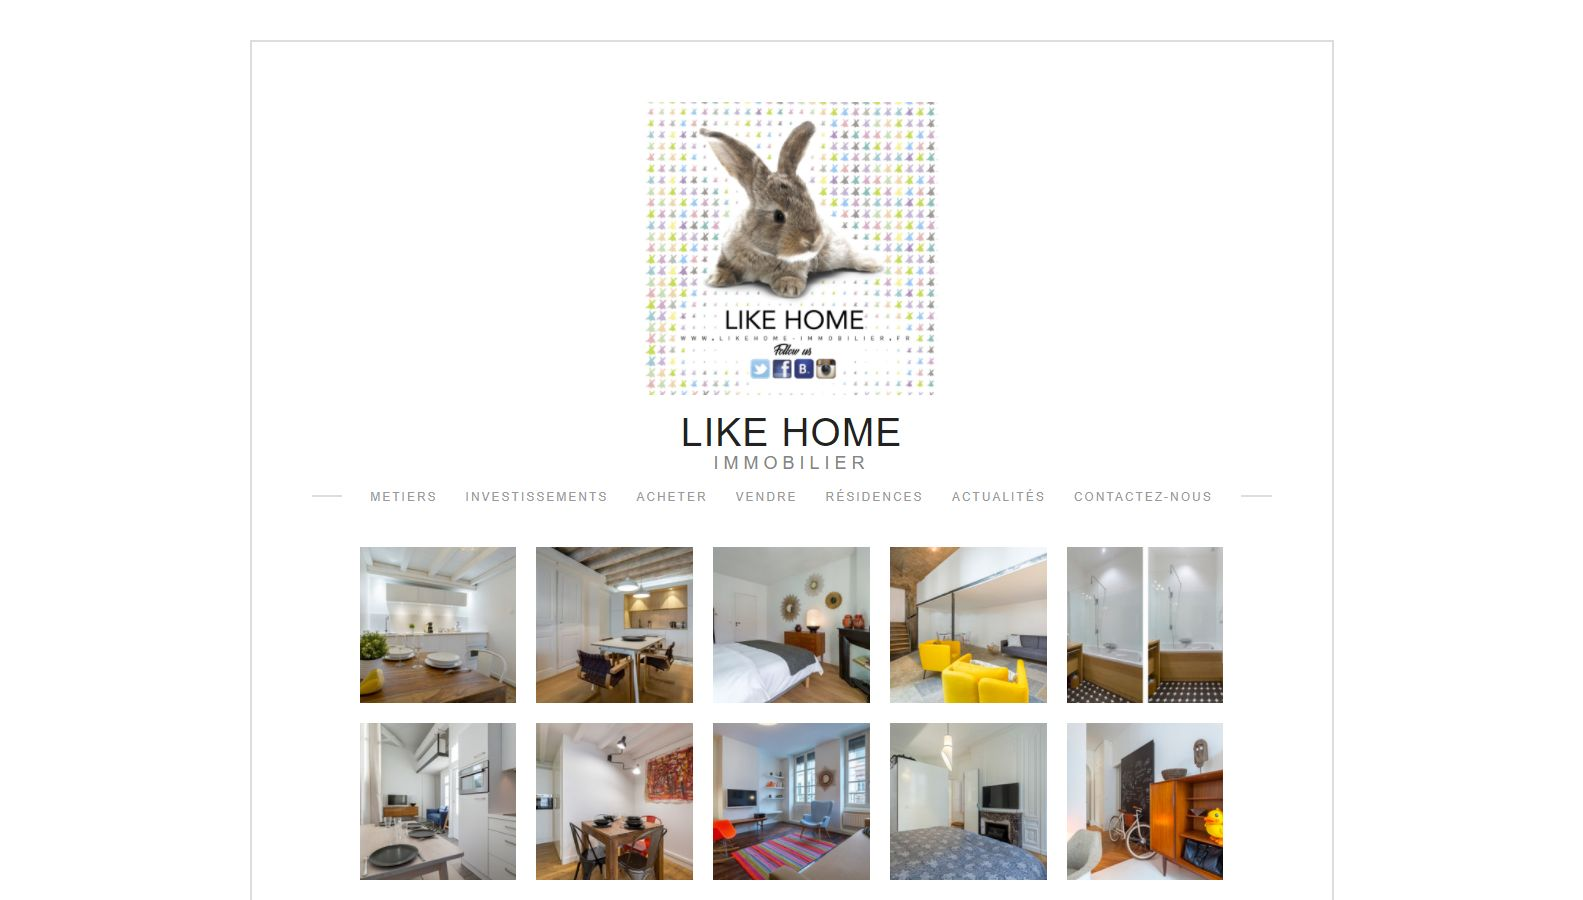 Réalisation RP2I (Romaric Pibolleau): LikeHome Immobilier - Site CMS